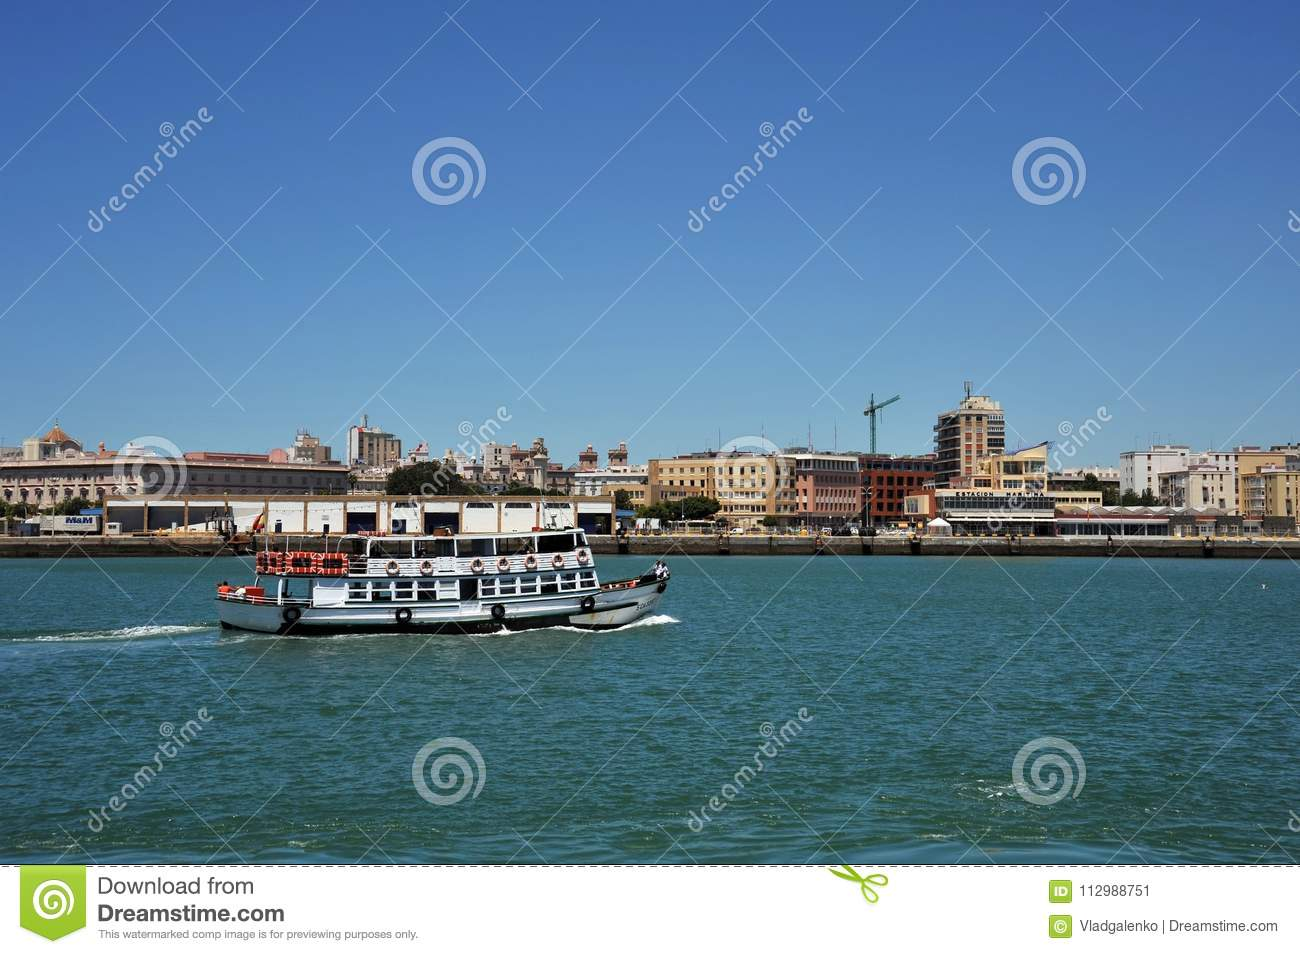 Ships in the harbor of the seaport of Cadiz on the shores of the Cadiz Bay of the Atlantic Ocean.